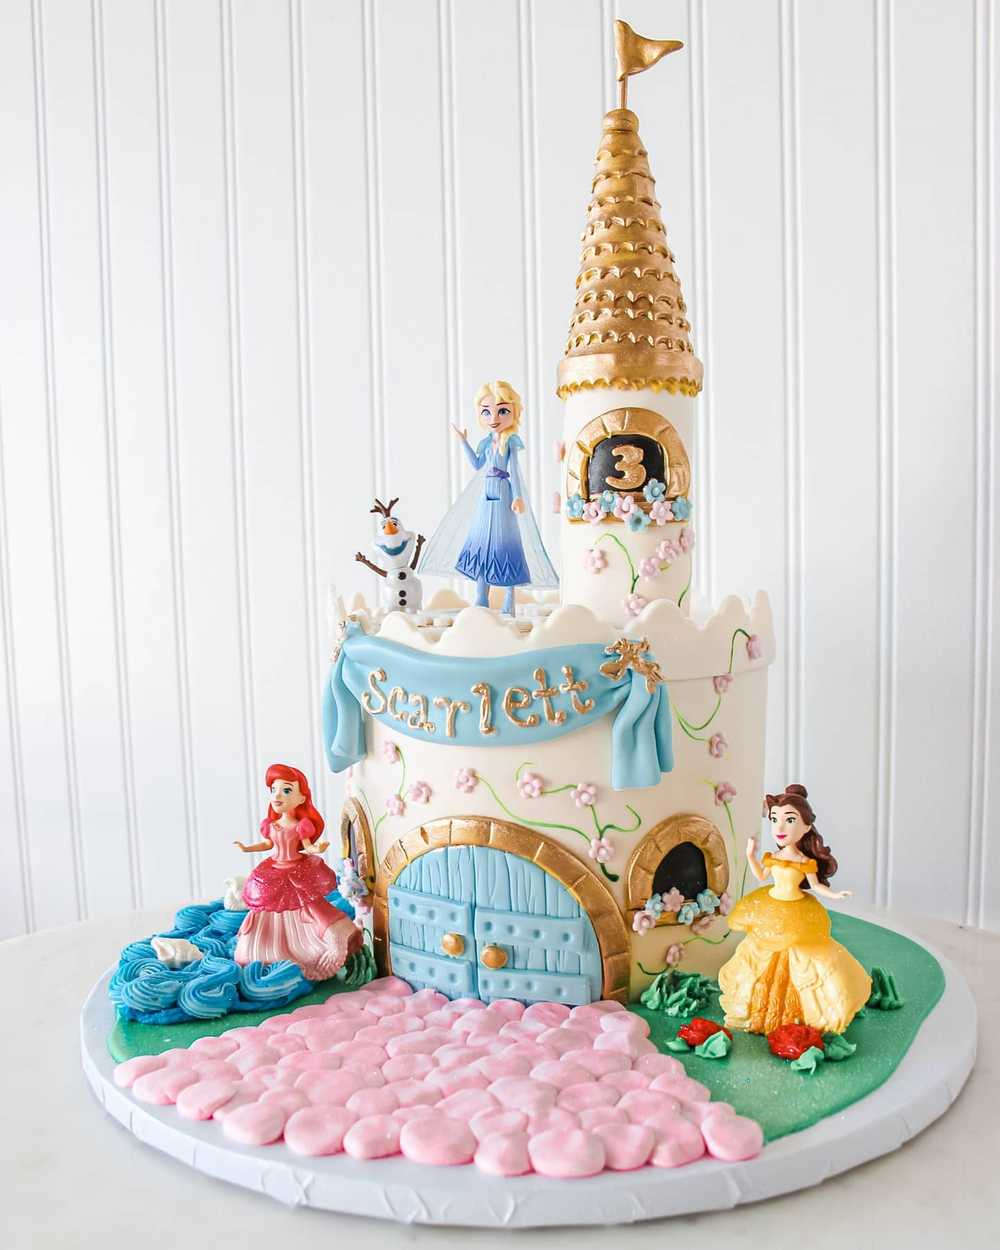 Amazon Com Gold Glitter Sofia Cake Topper Disney Princess Sofia Inspired Cake Topper Sofia The First Theme Birthday Party Suppliers Girls Princess Party Favor Toys Games